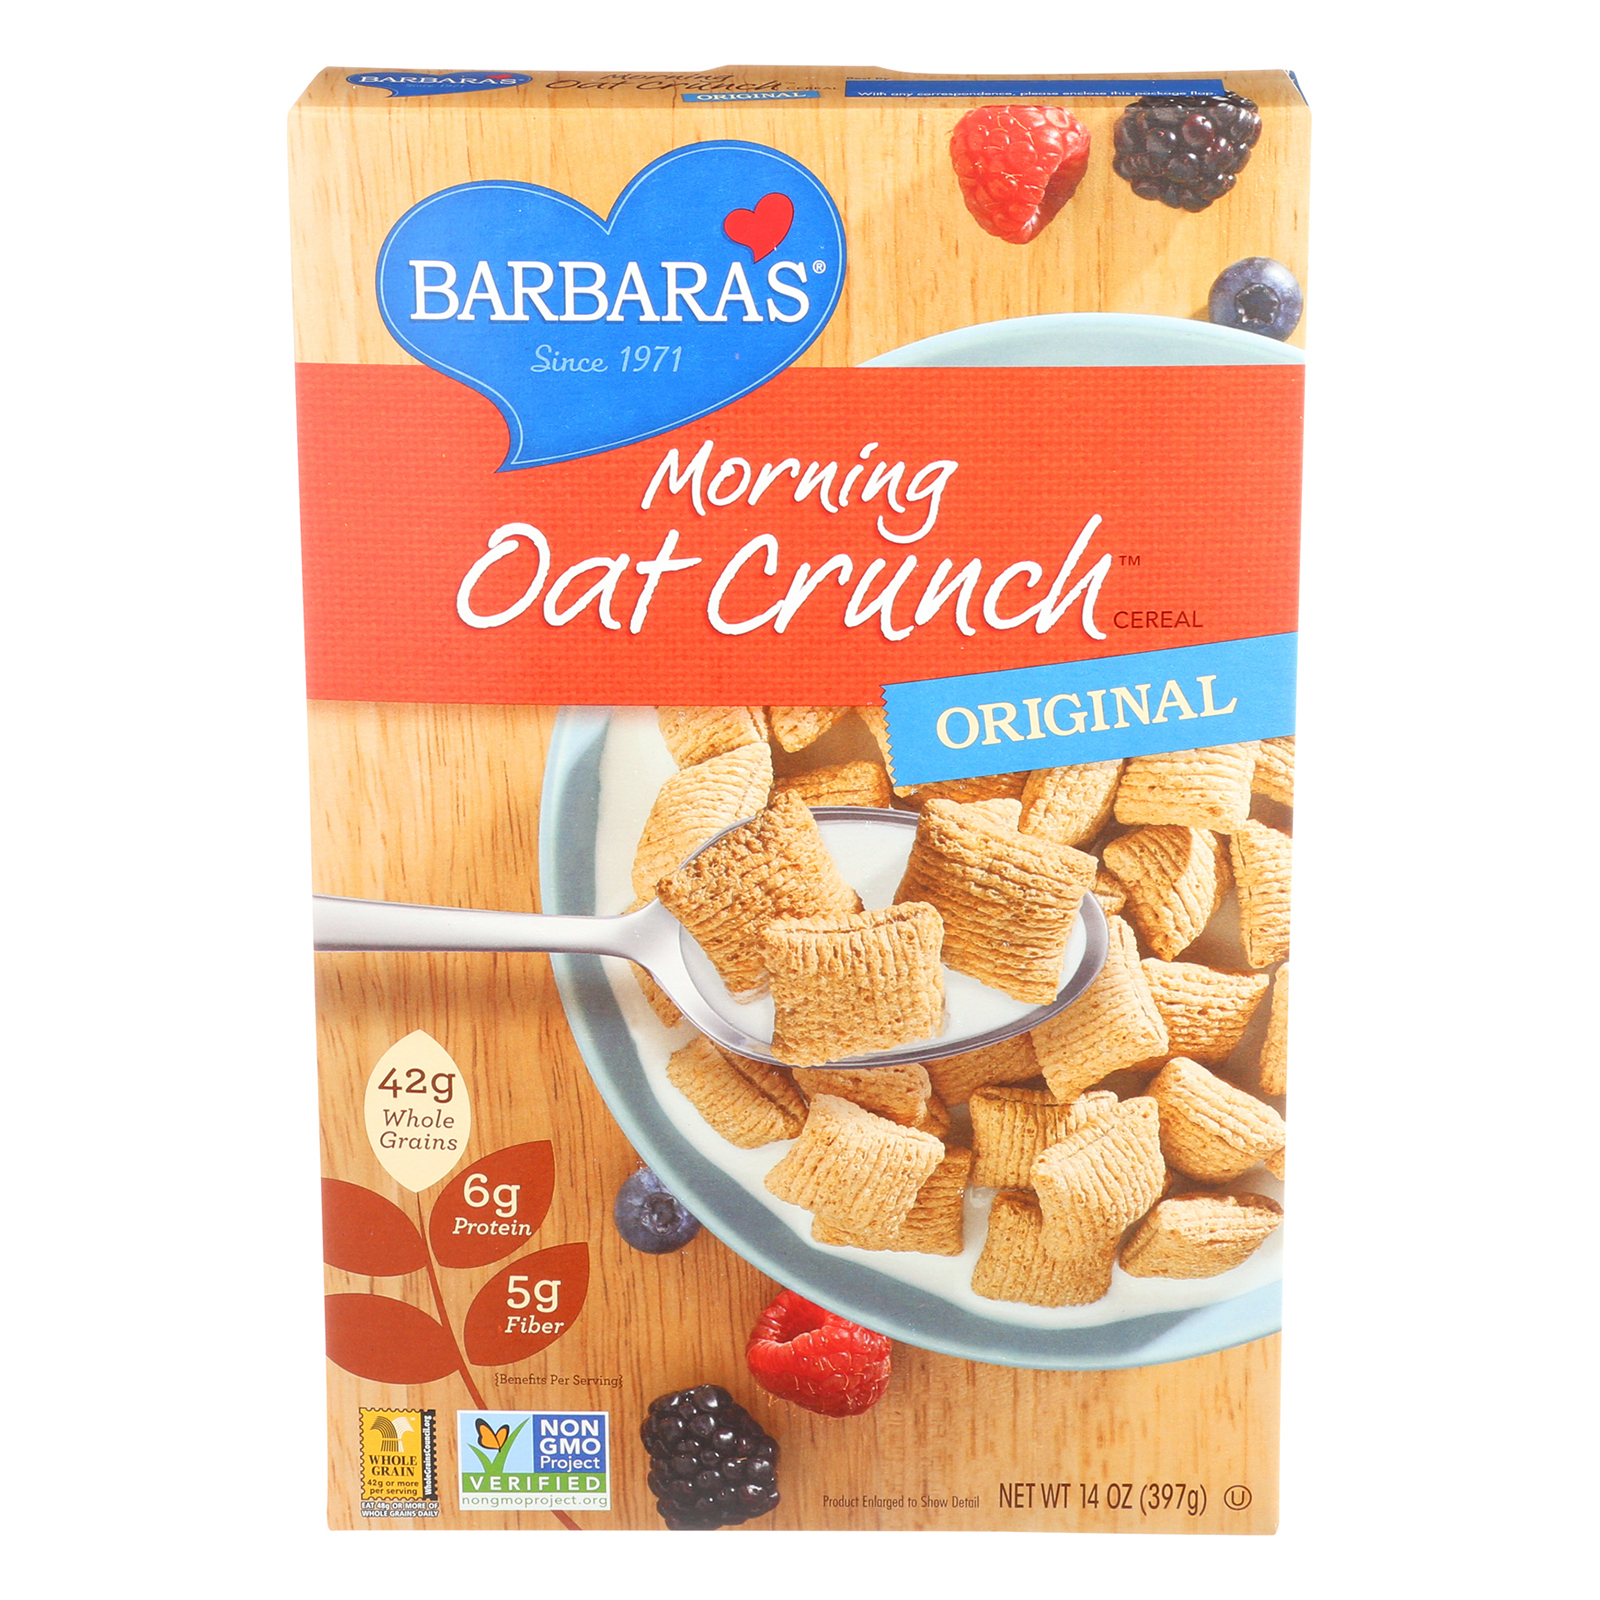 Barbara's Bakery Morning Oat Crunch Cereal - Original - Case of 12 - 14 oz.